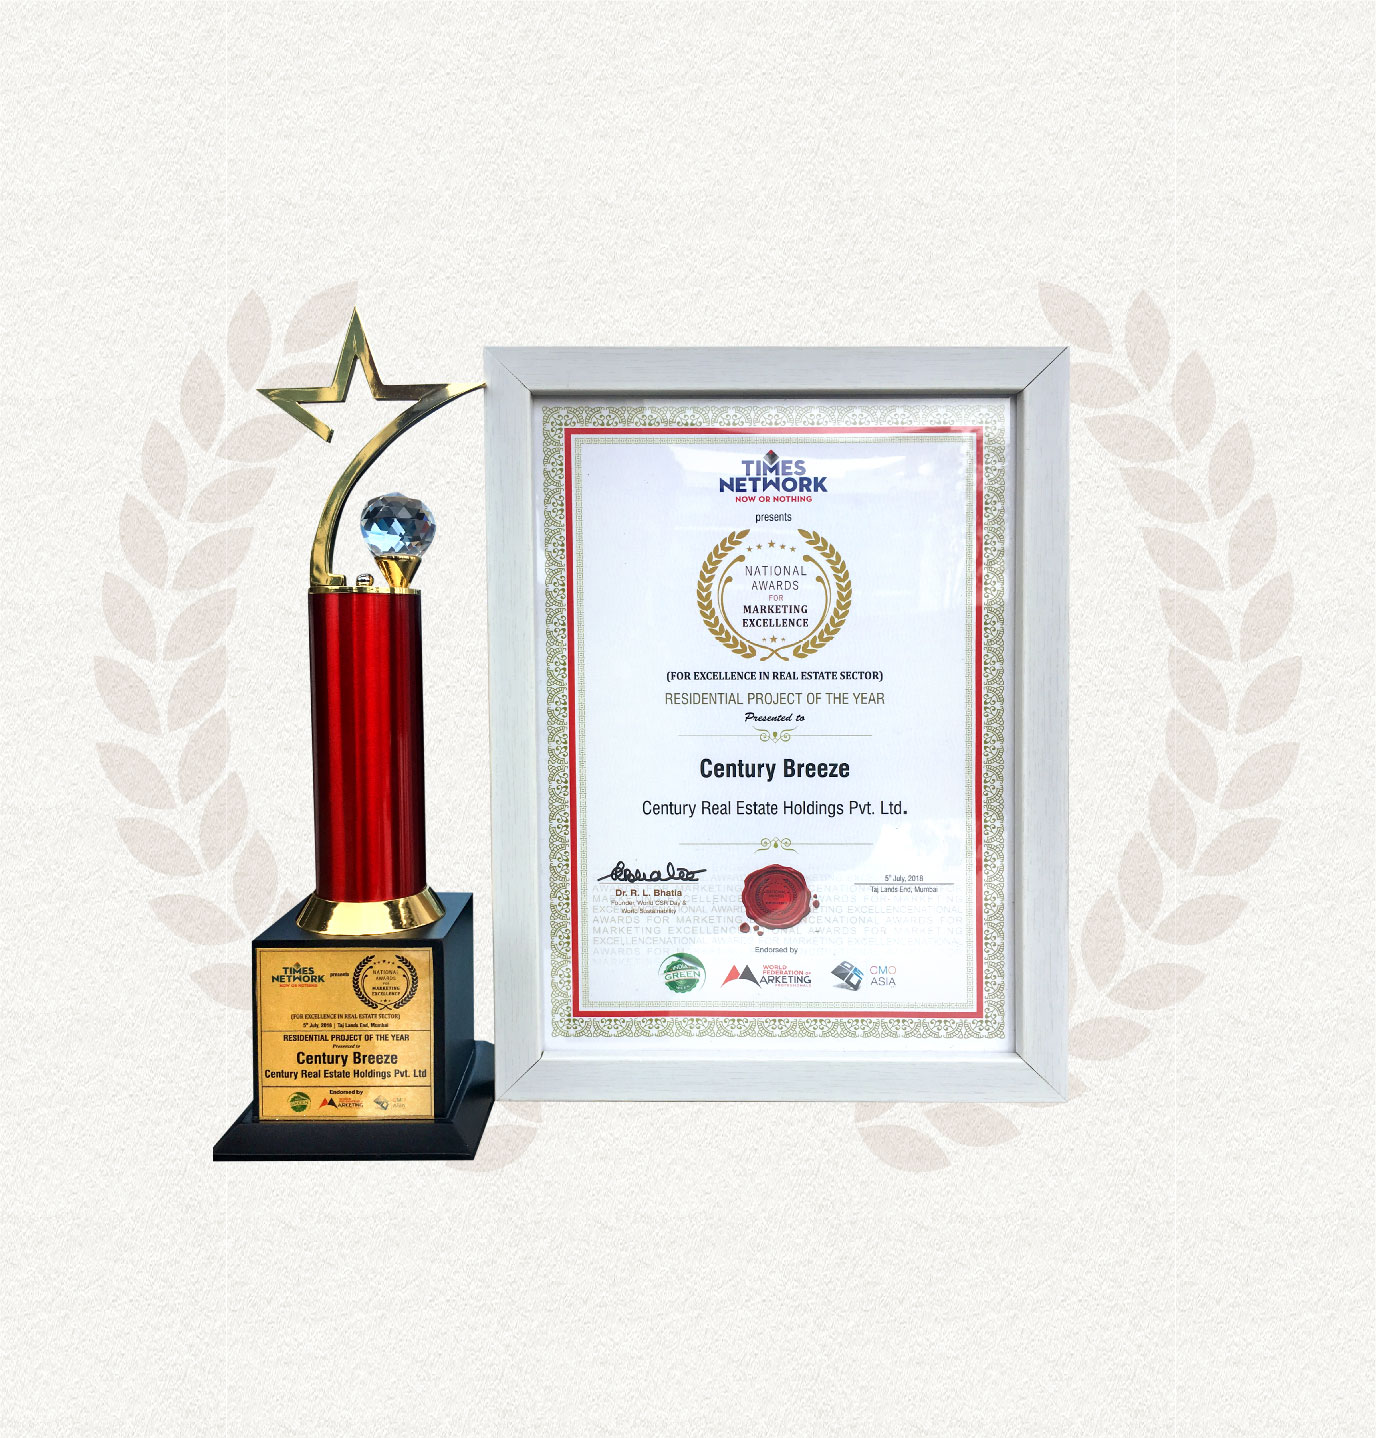 CENTURY BREEZE WINS BEST RESIDENTIAL PROJECT OF THE YEAR - 2018